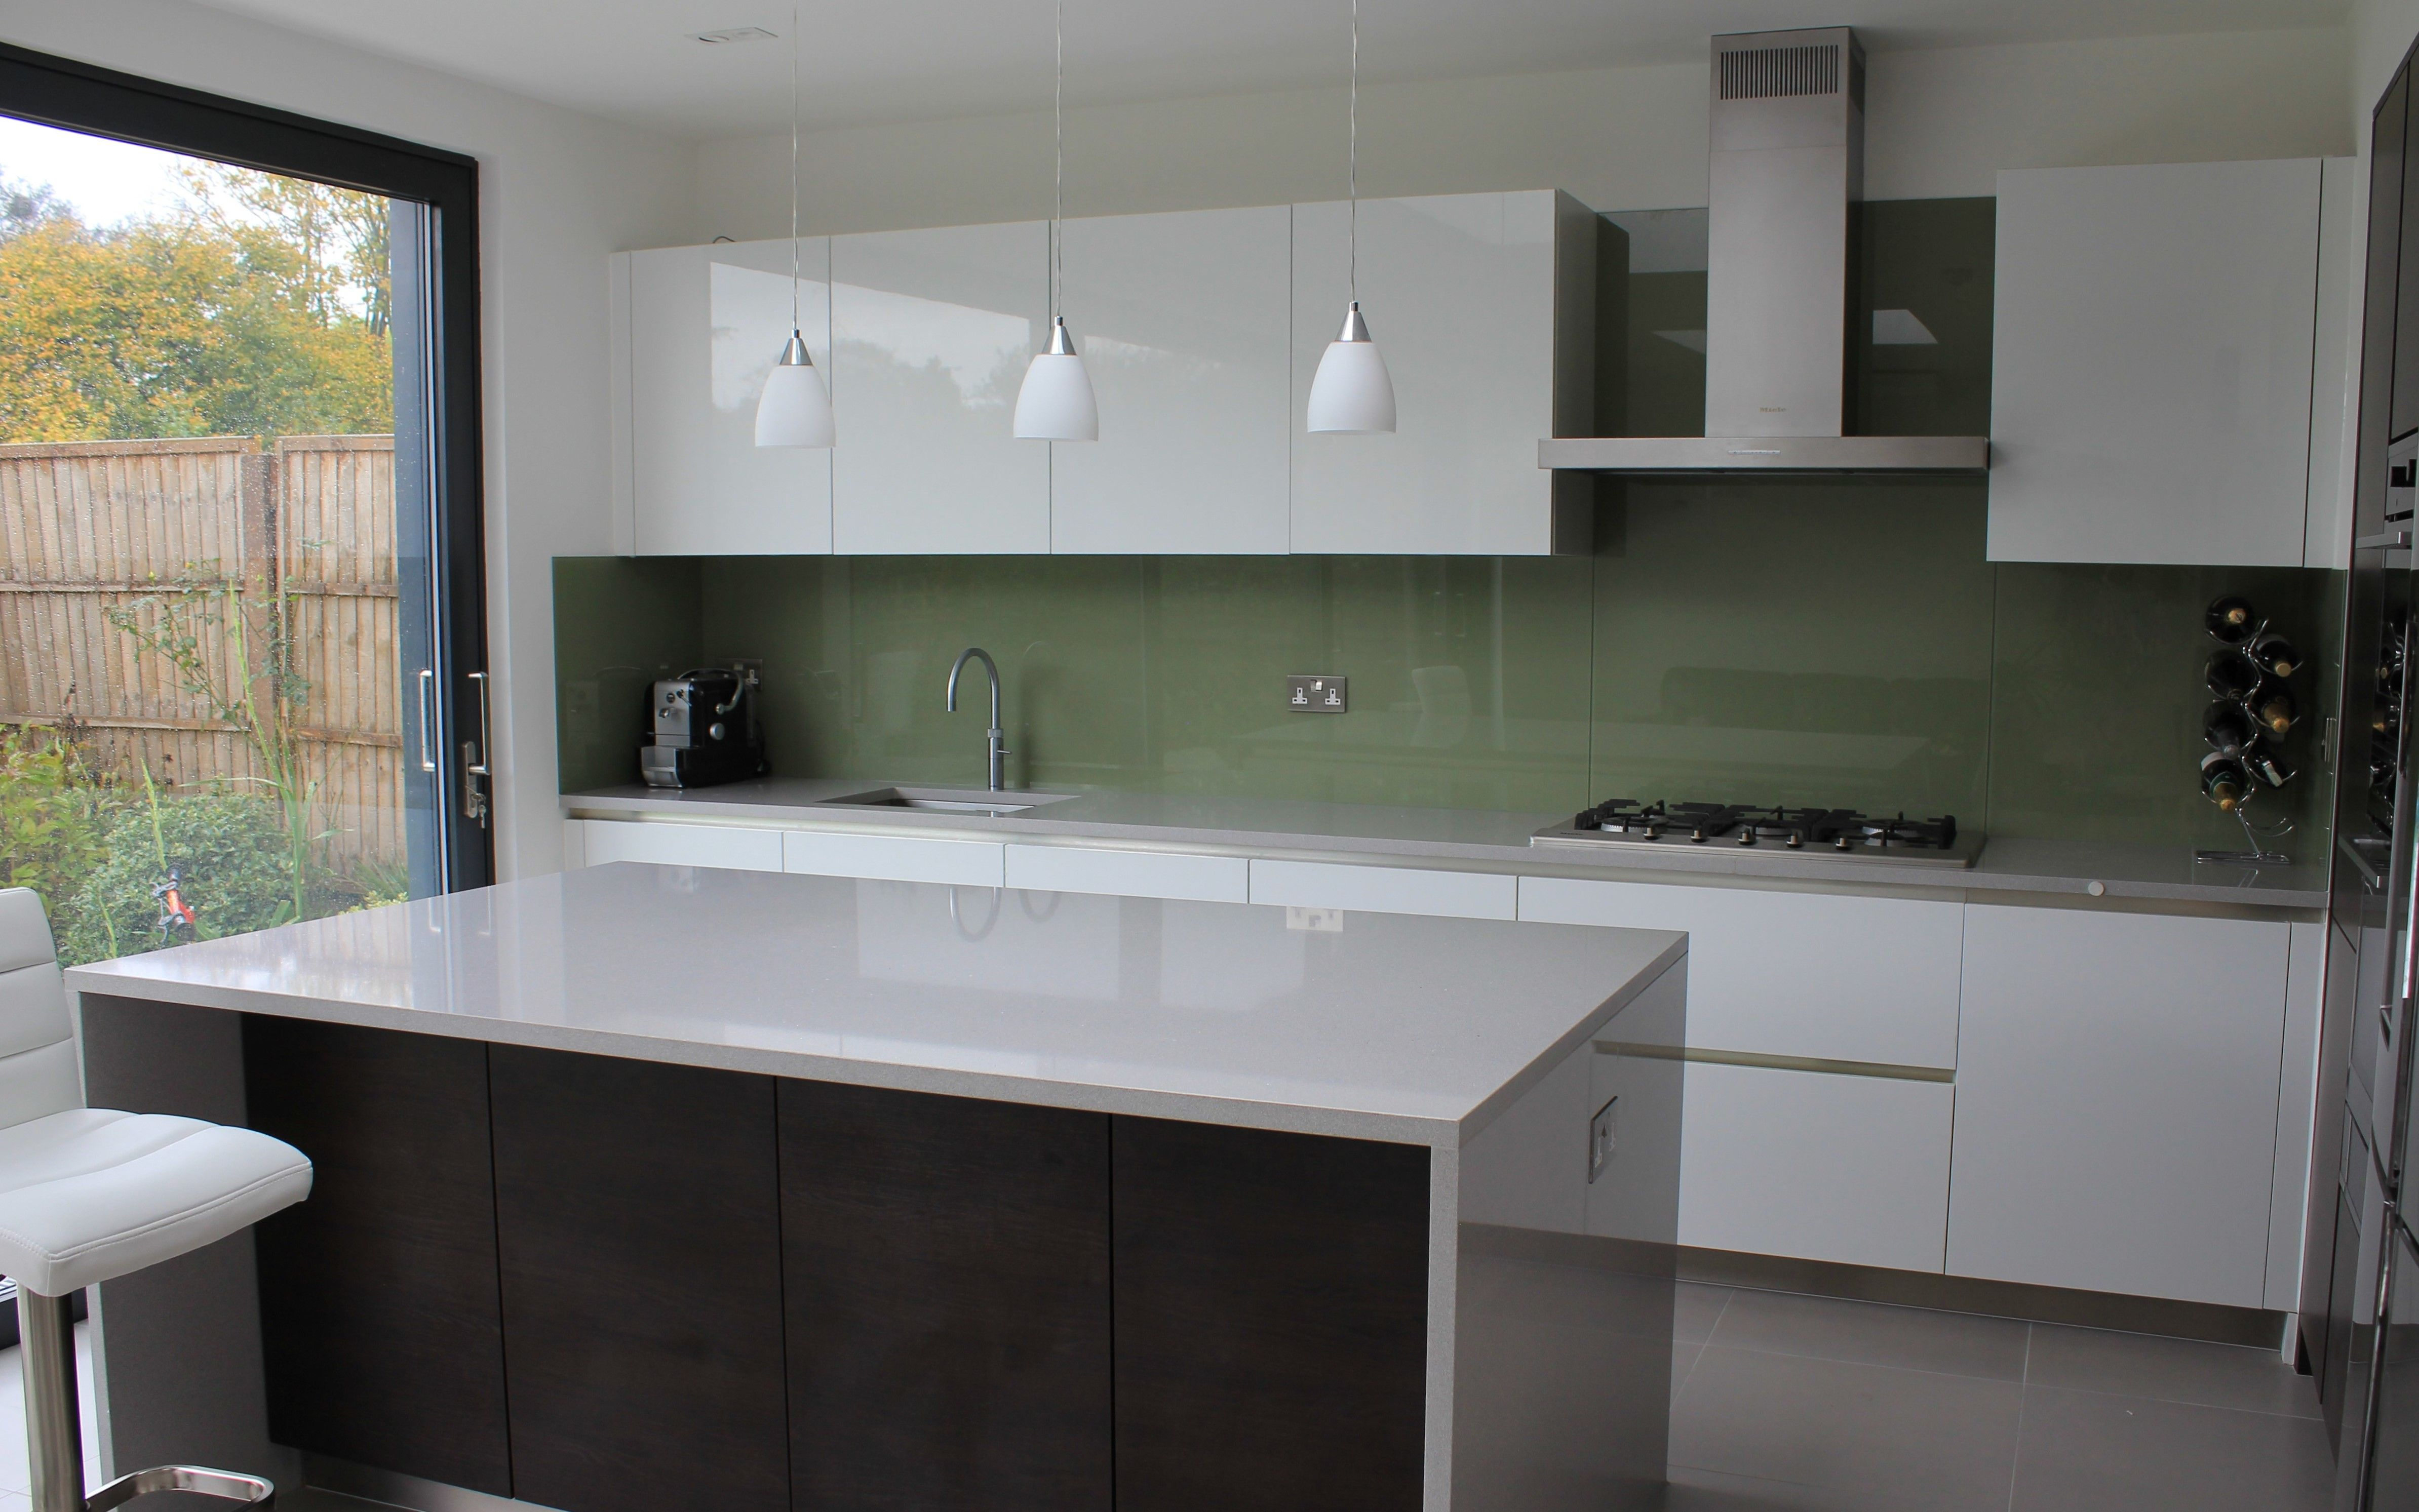 White Kitchen Worktops silestone aluminio nube quartz kitchen worktops and island with